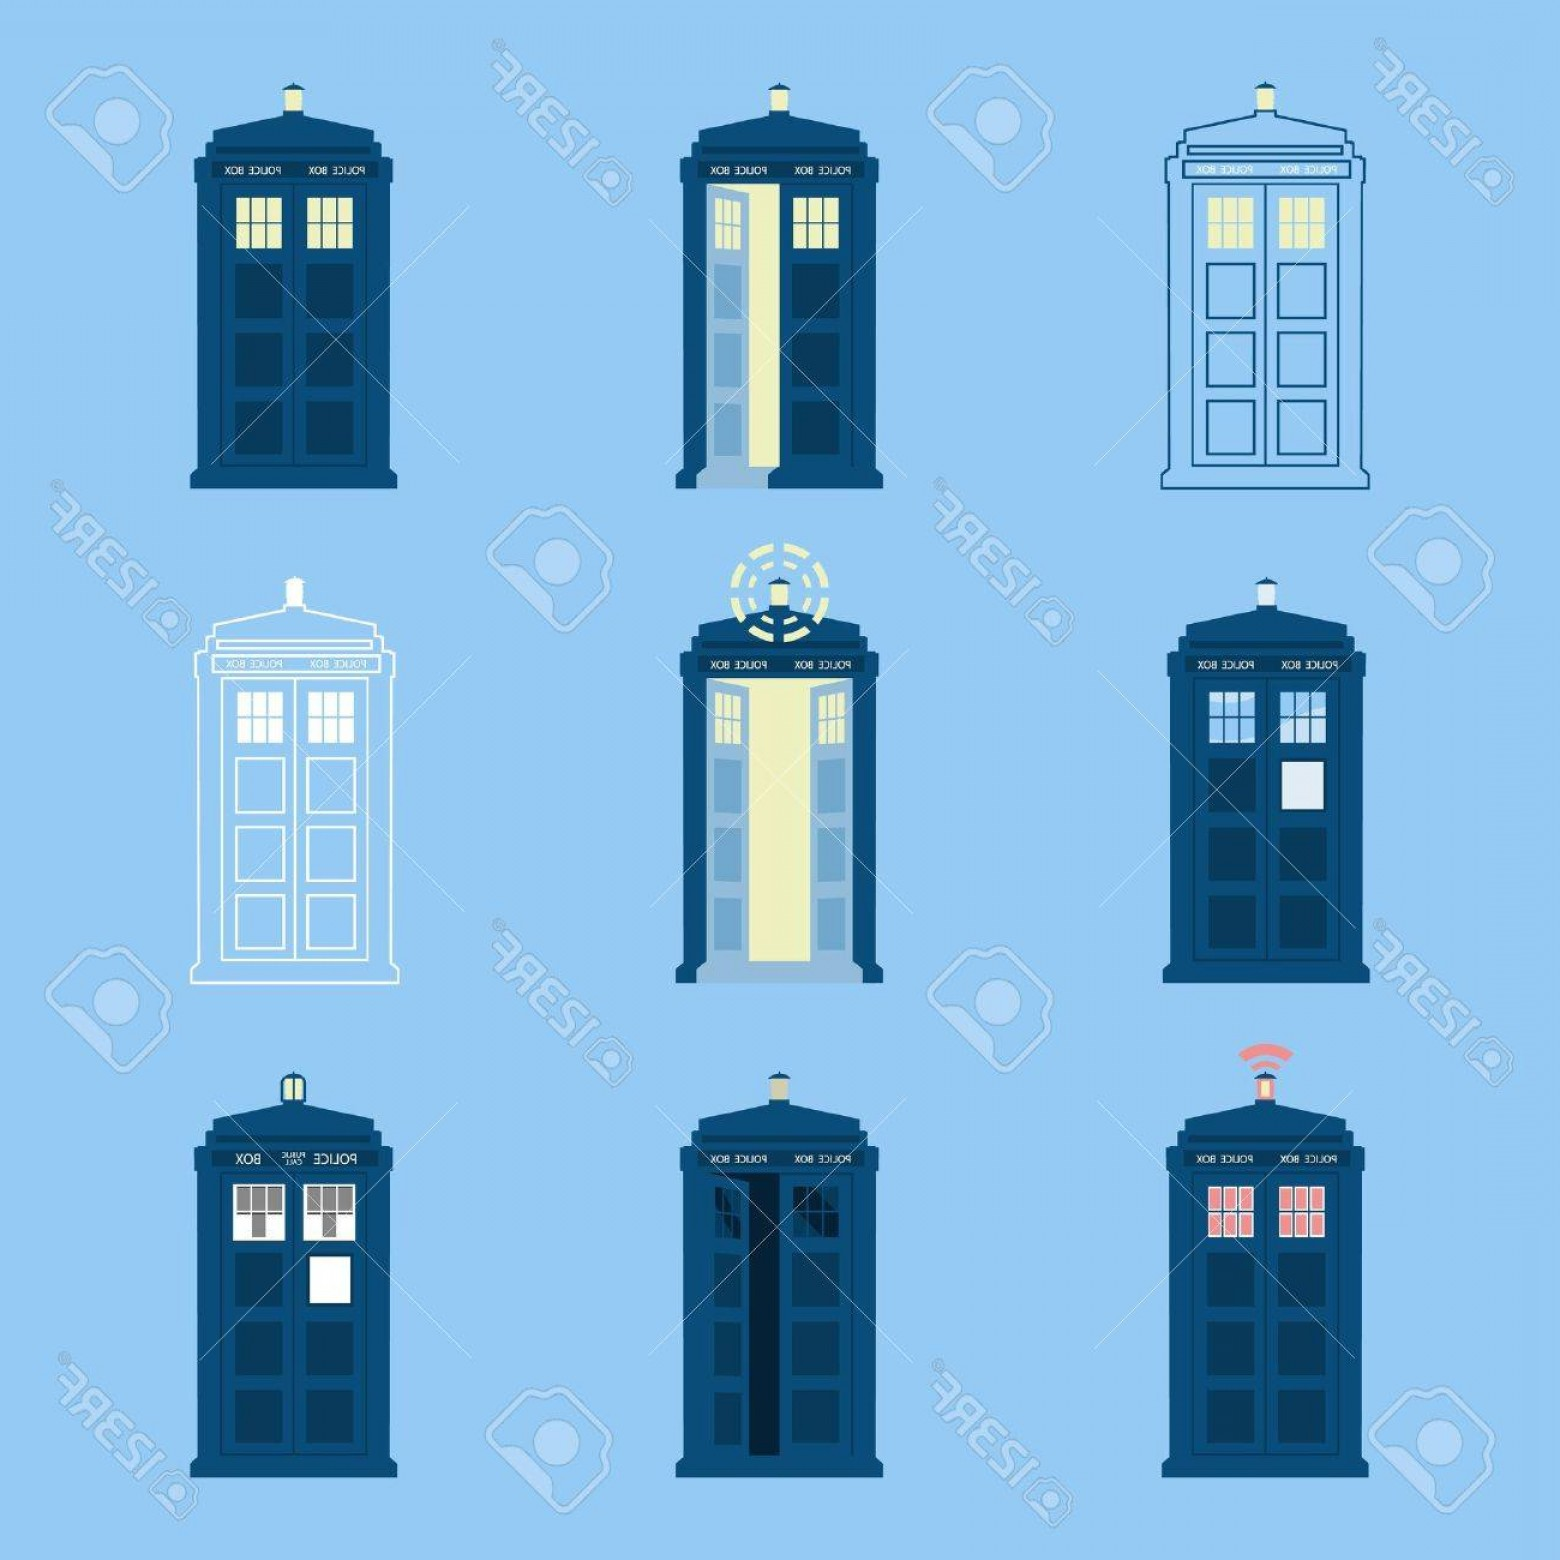 Vector Police Box: Photostock Vector Set Of British Police Boxes Icons Of Telephone Boxes Telephone In London And England For Police Call